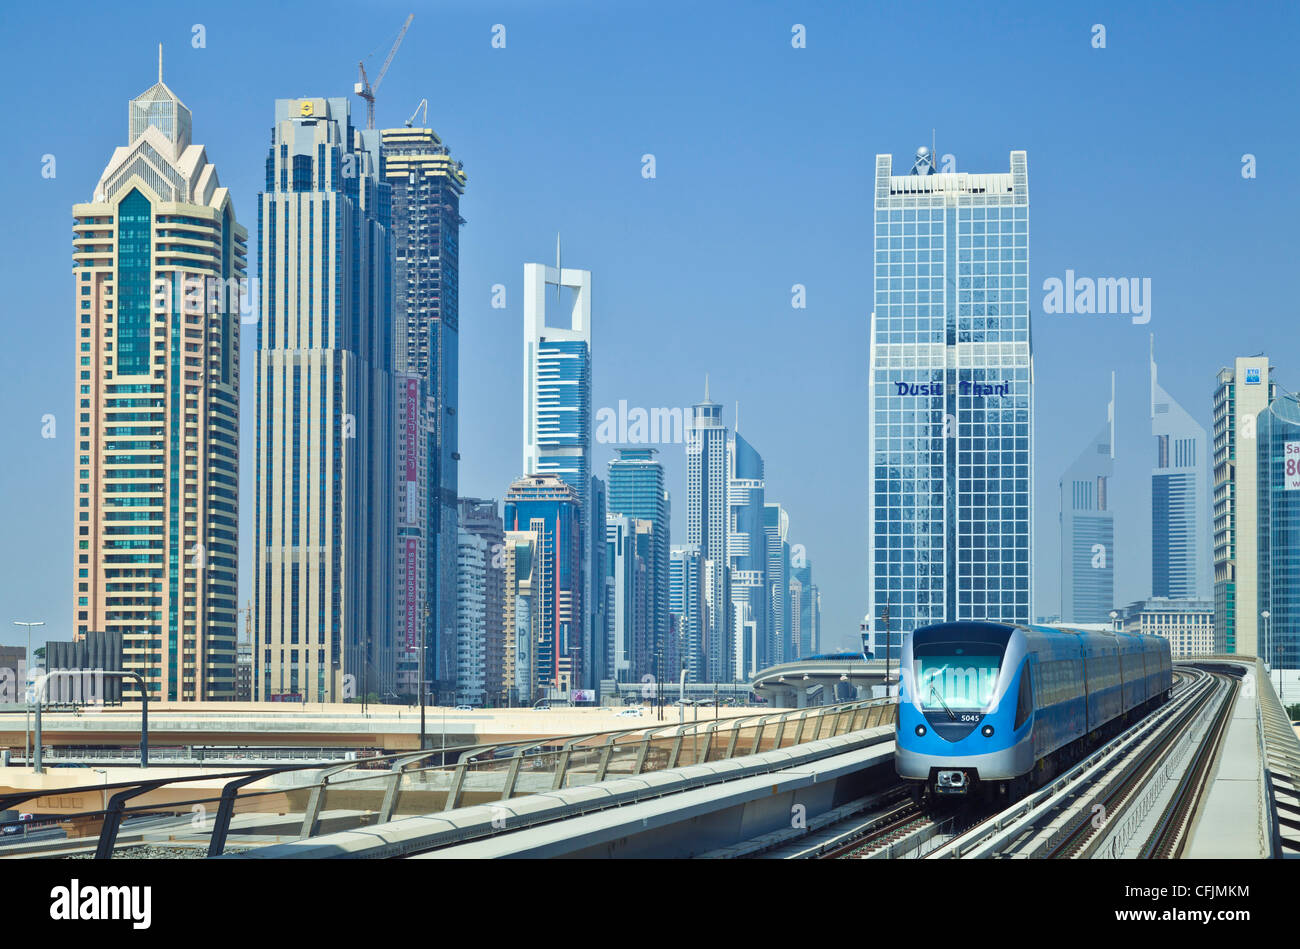 Sheikh Zayed Road skyline of high rise buildings and skyscrapers, and metro train, Dubai City, United Arab Emirates, - Stock Image